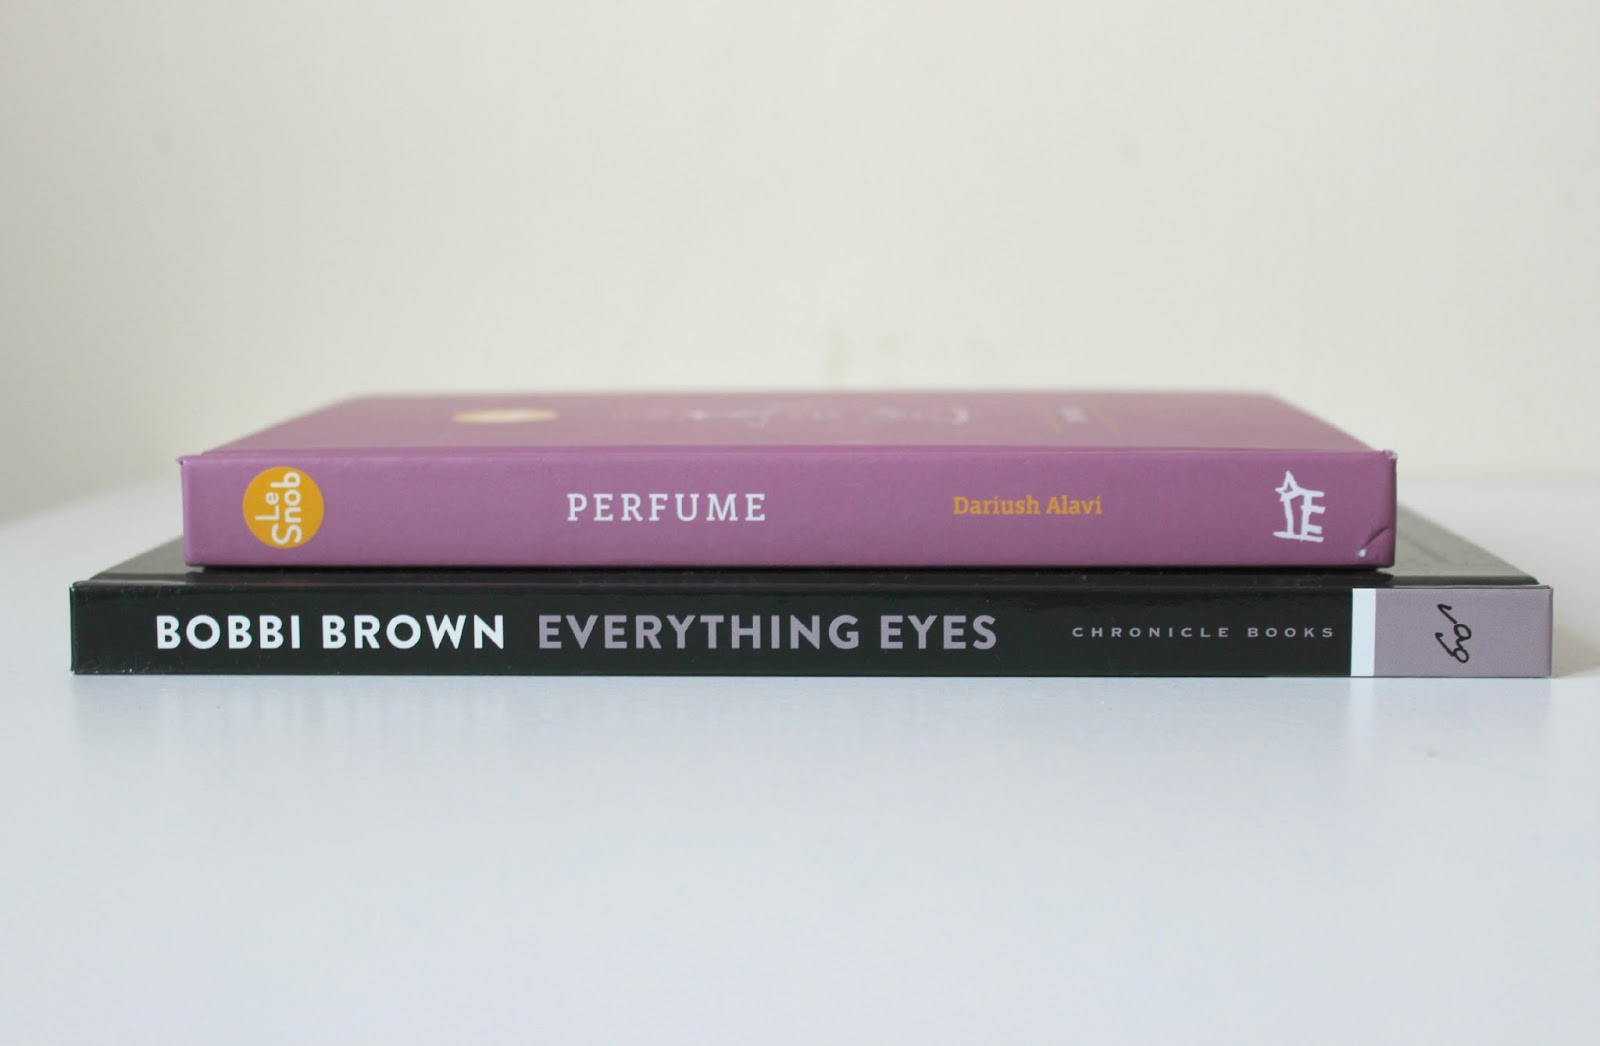 A picture of Le Snob, Perfume and Bobbi Brown Everything Eyes